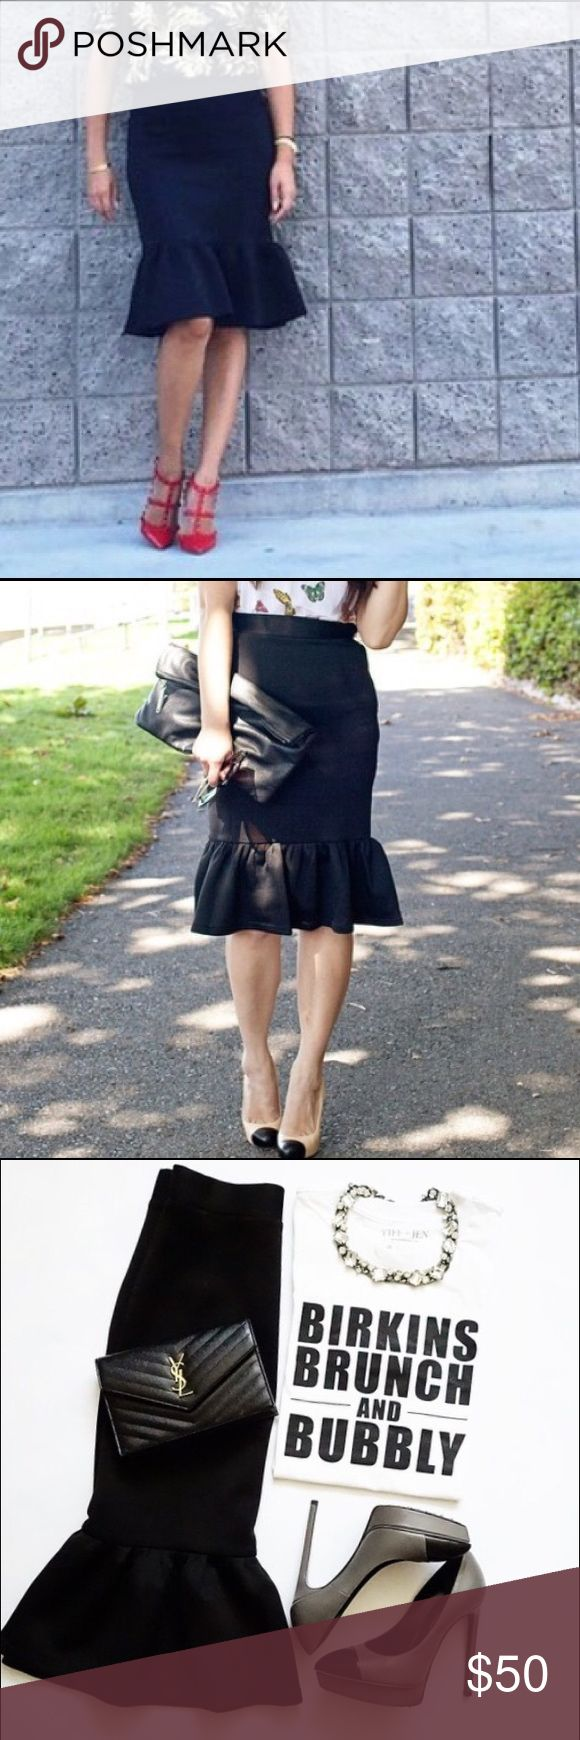 Adorable Black Peplum Skirt Size Small Size small, new without tags, black peplum skirt! Super classy and oh so stylish! Skirts Midi